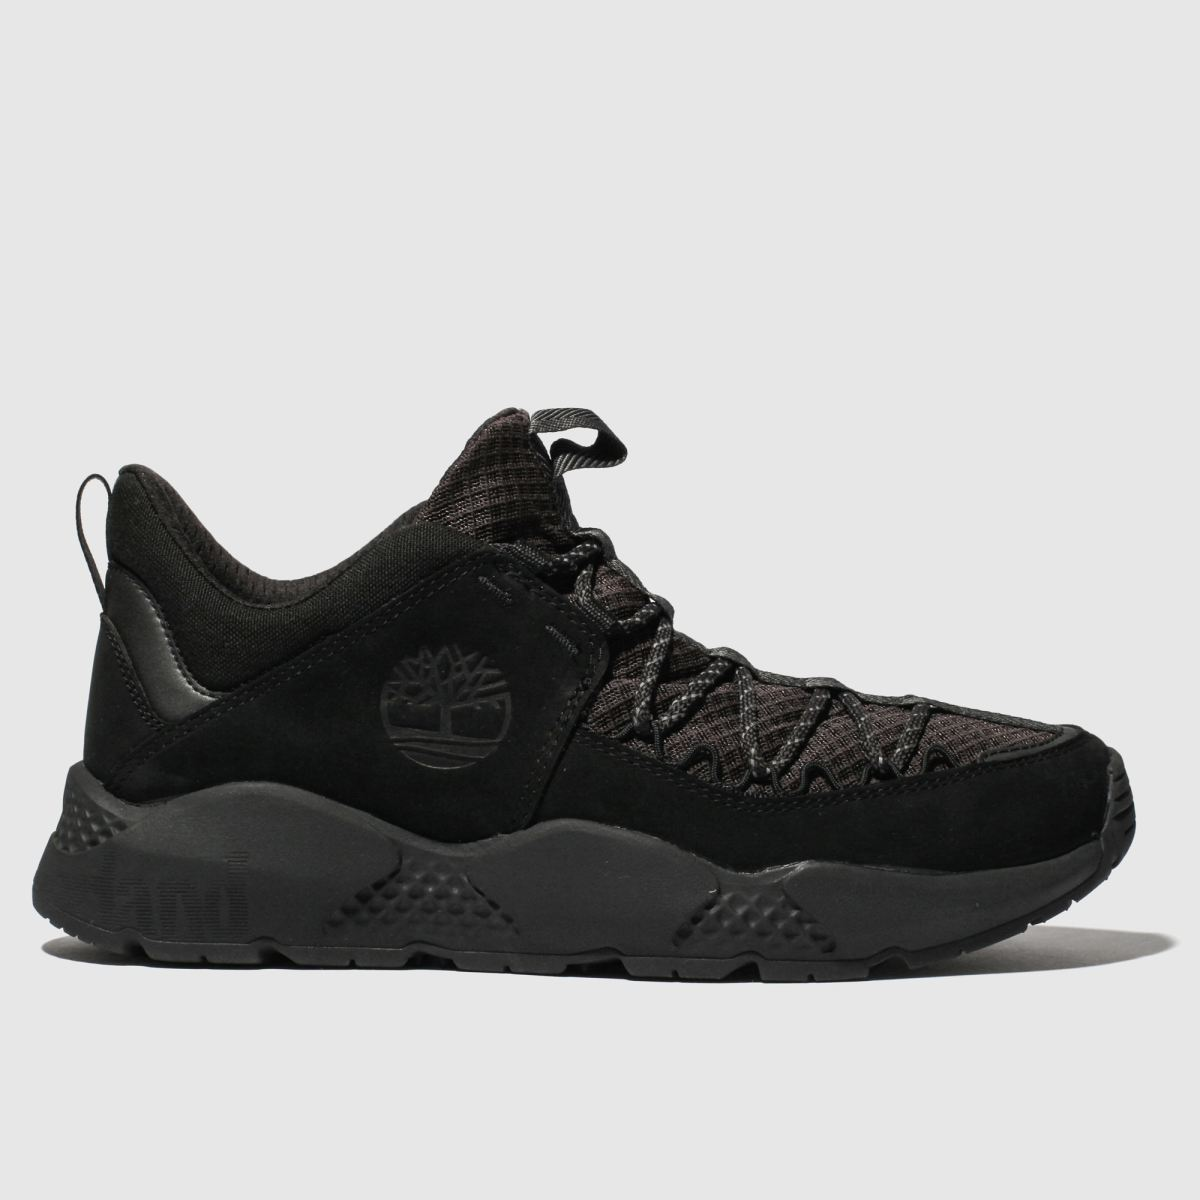 Timberland Black Ripcord Low Boots